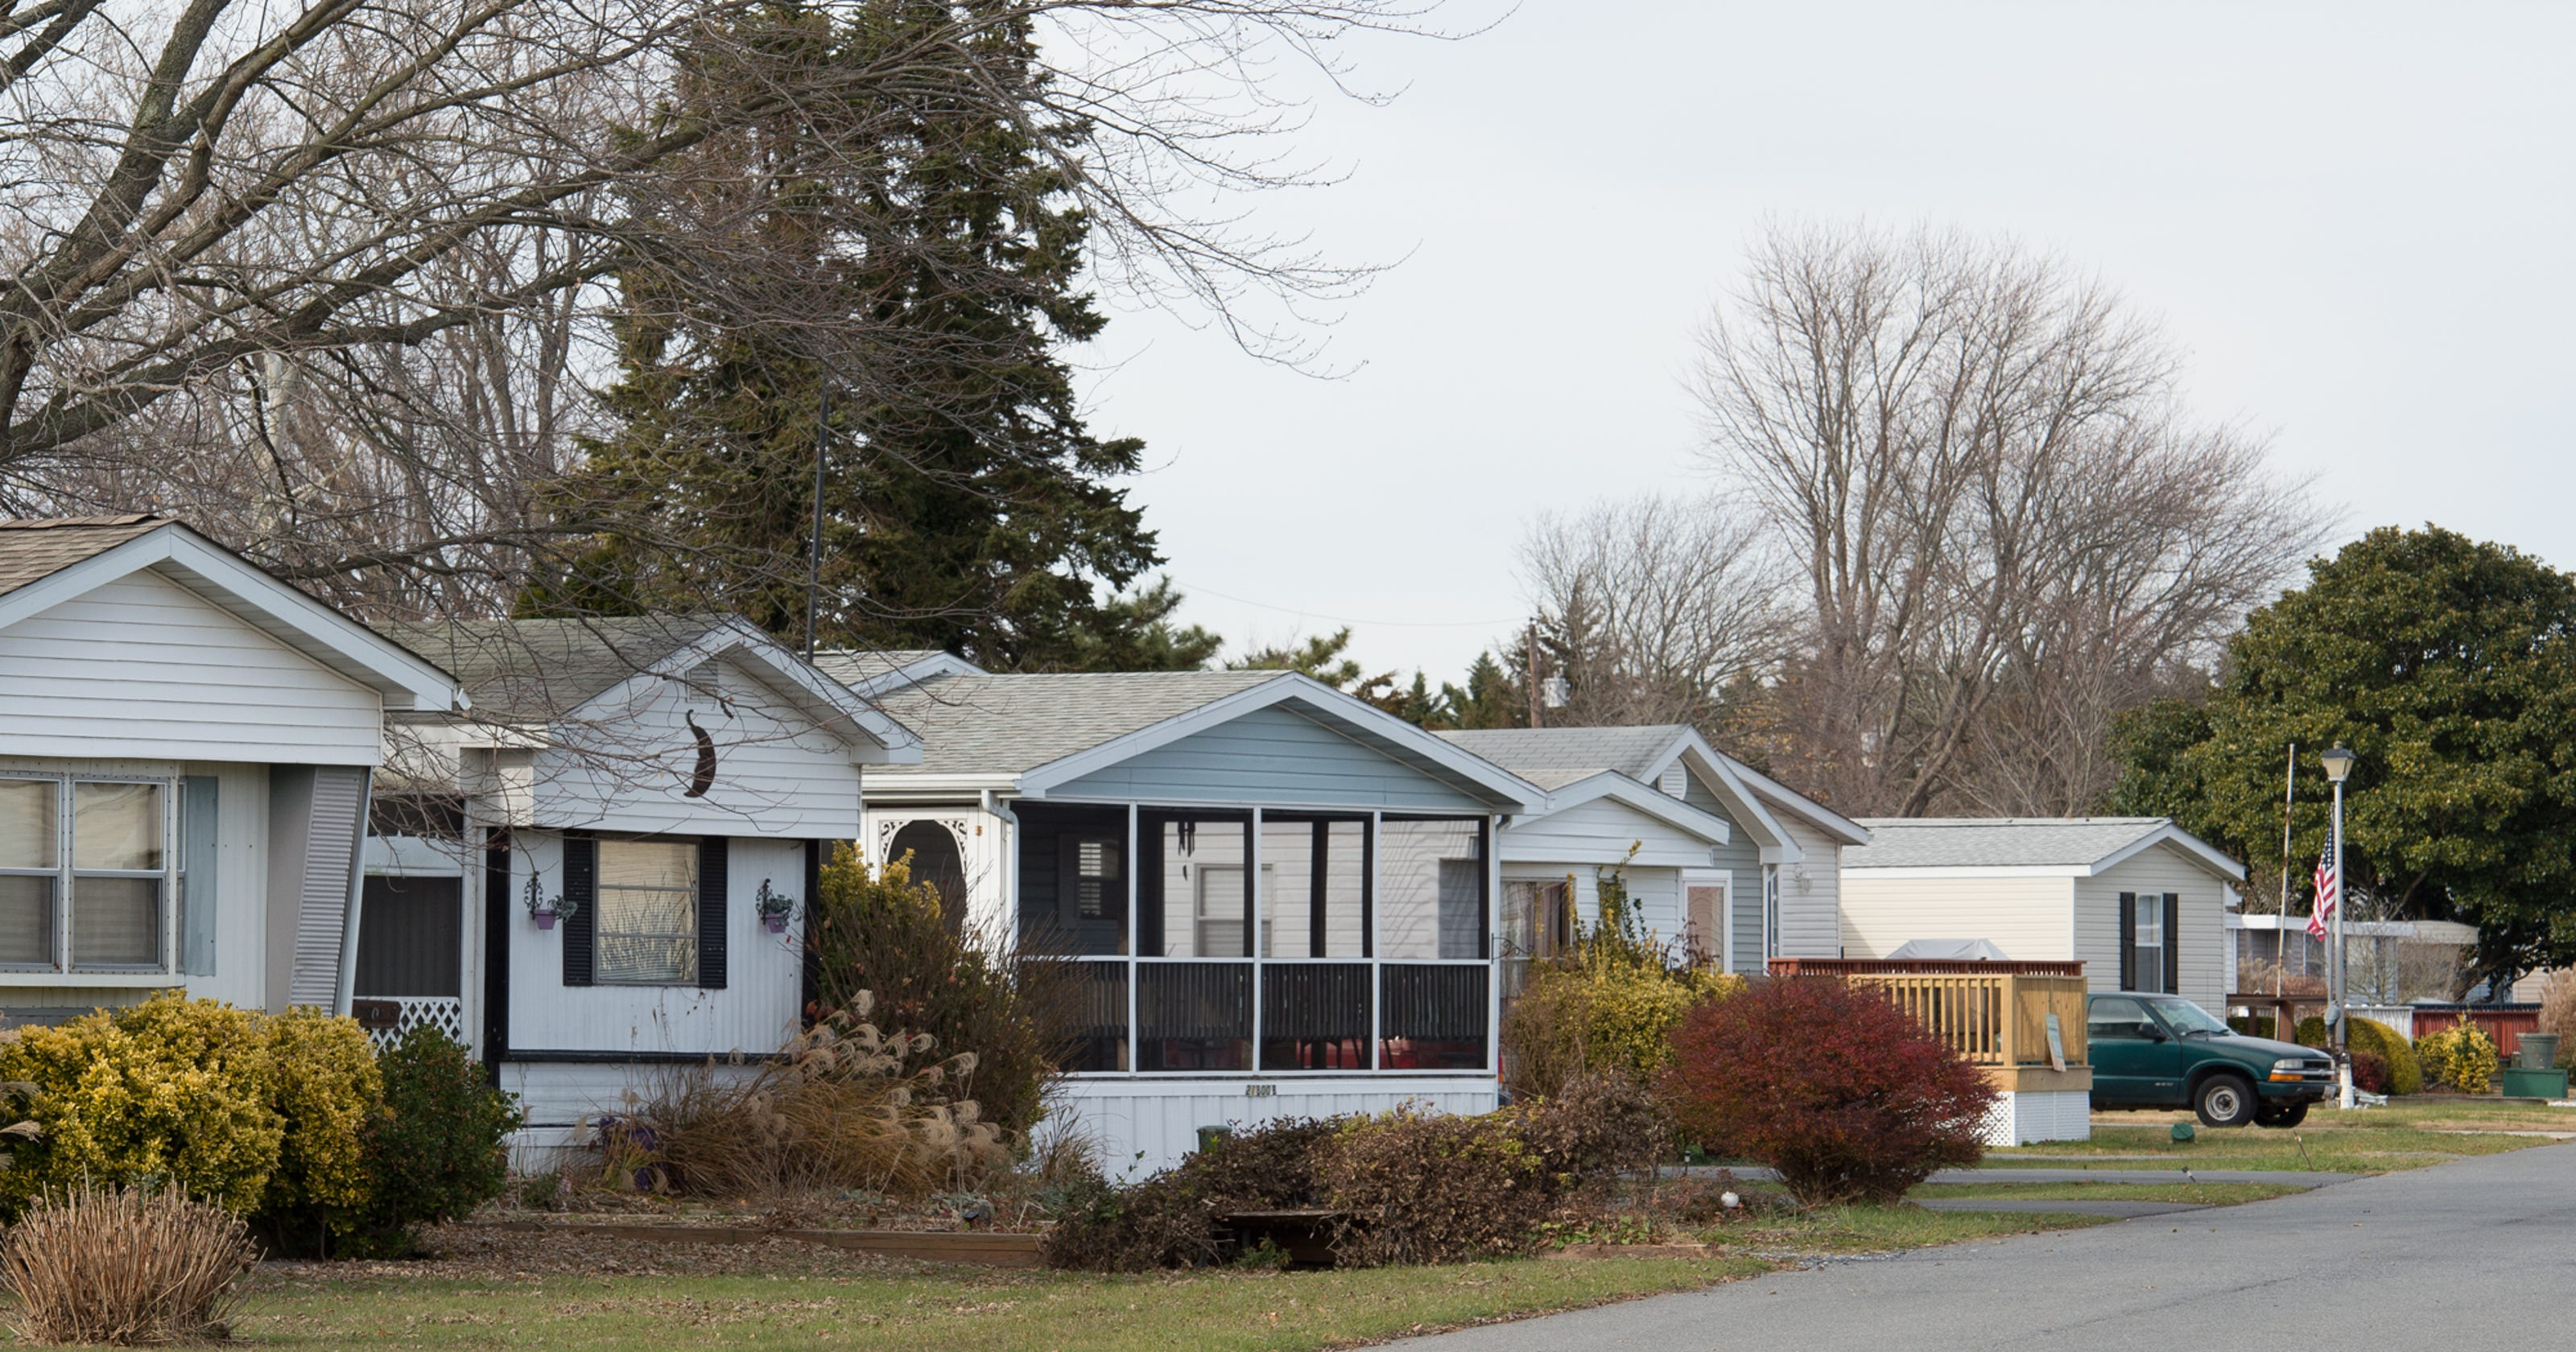 Mobile home rent disputes spark anger, proposals for new laws